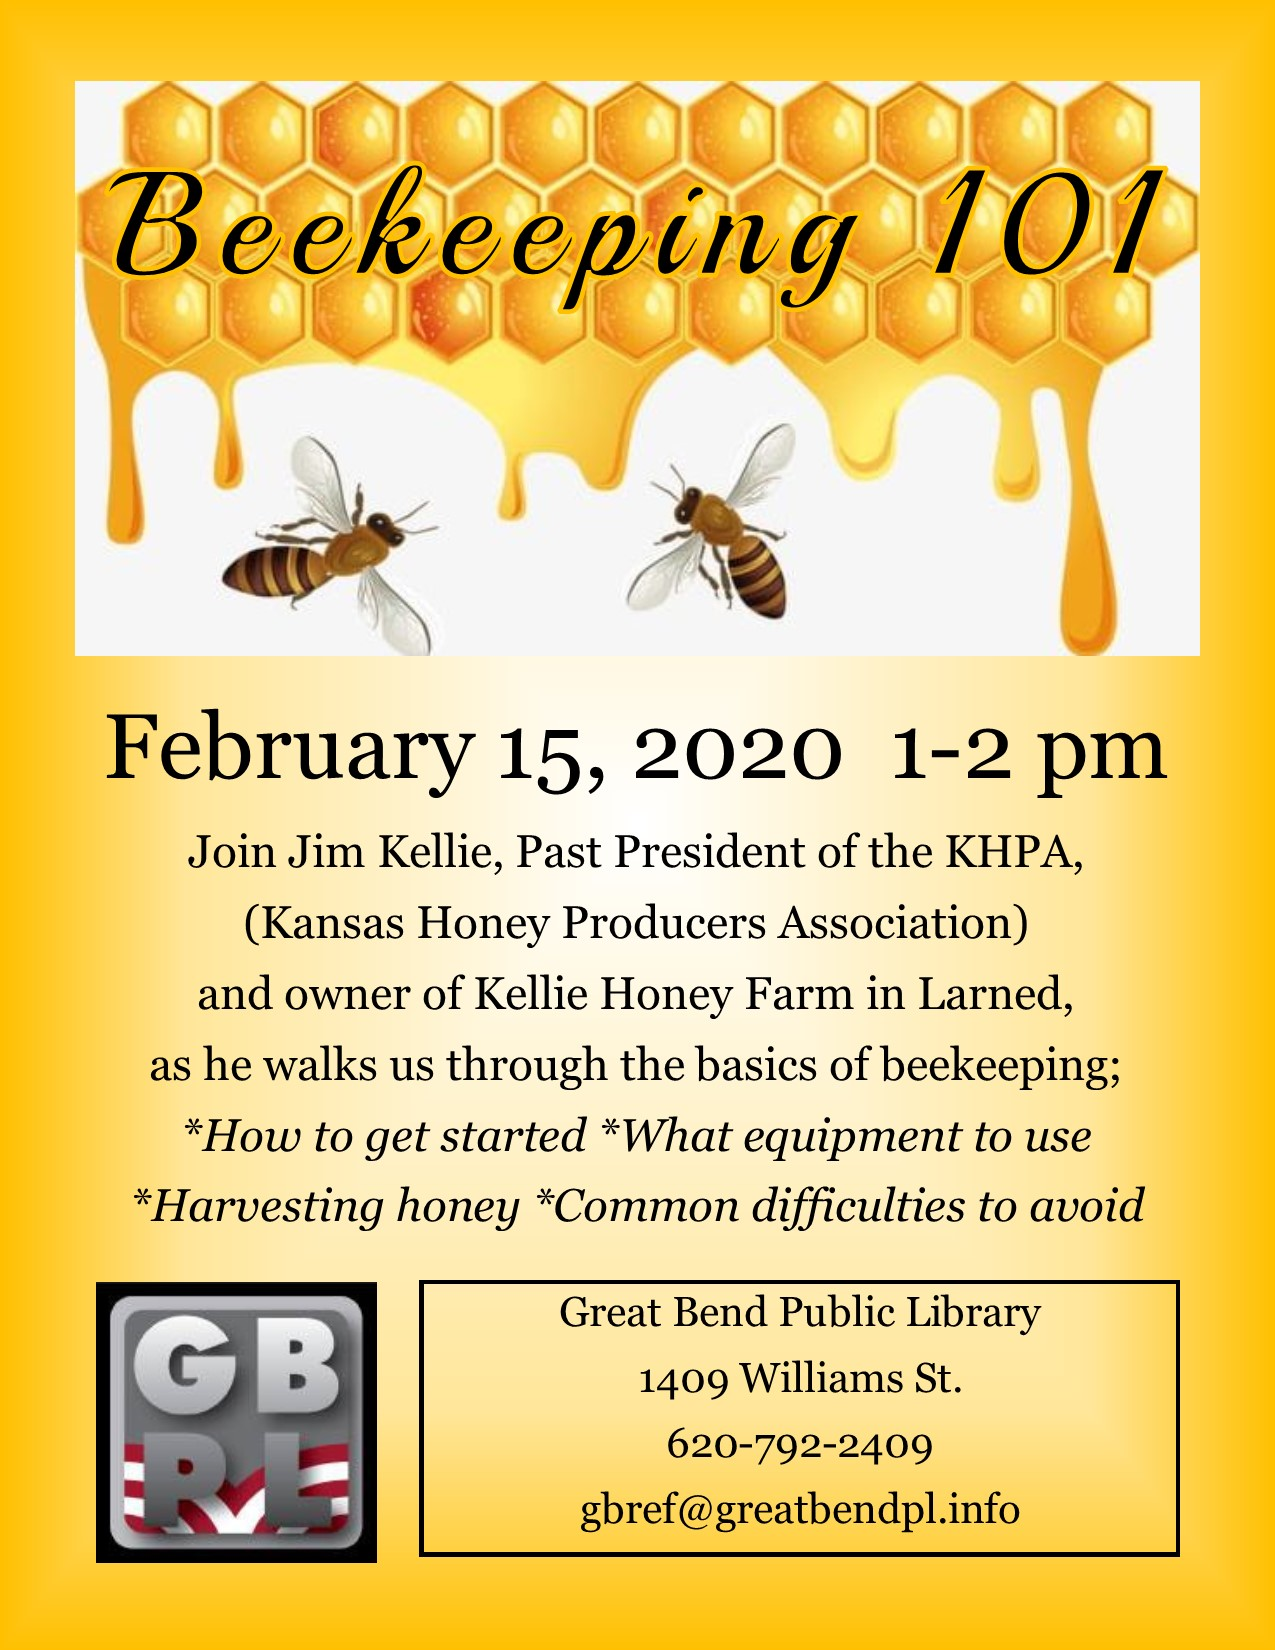 Beekeeping 101 with Jim Kellie from Larned